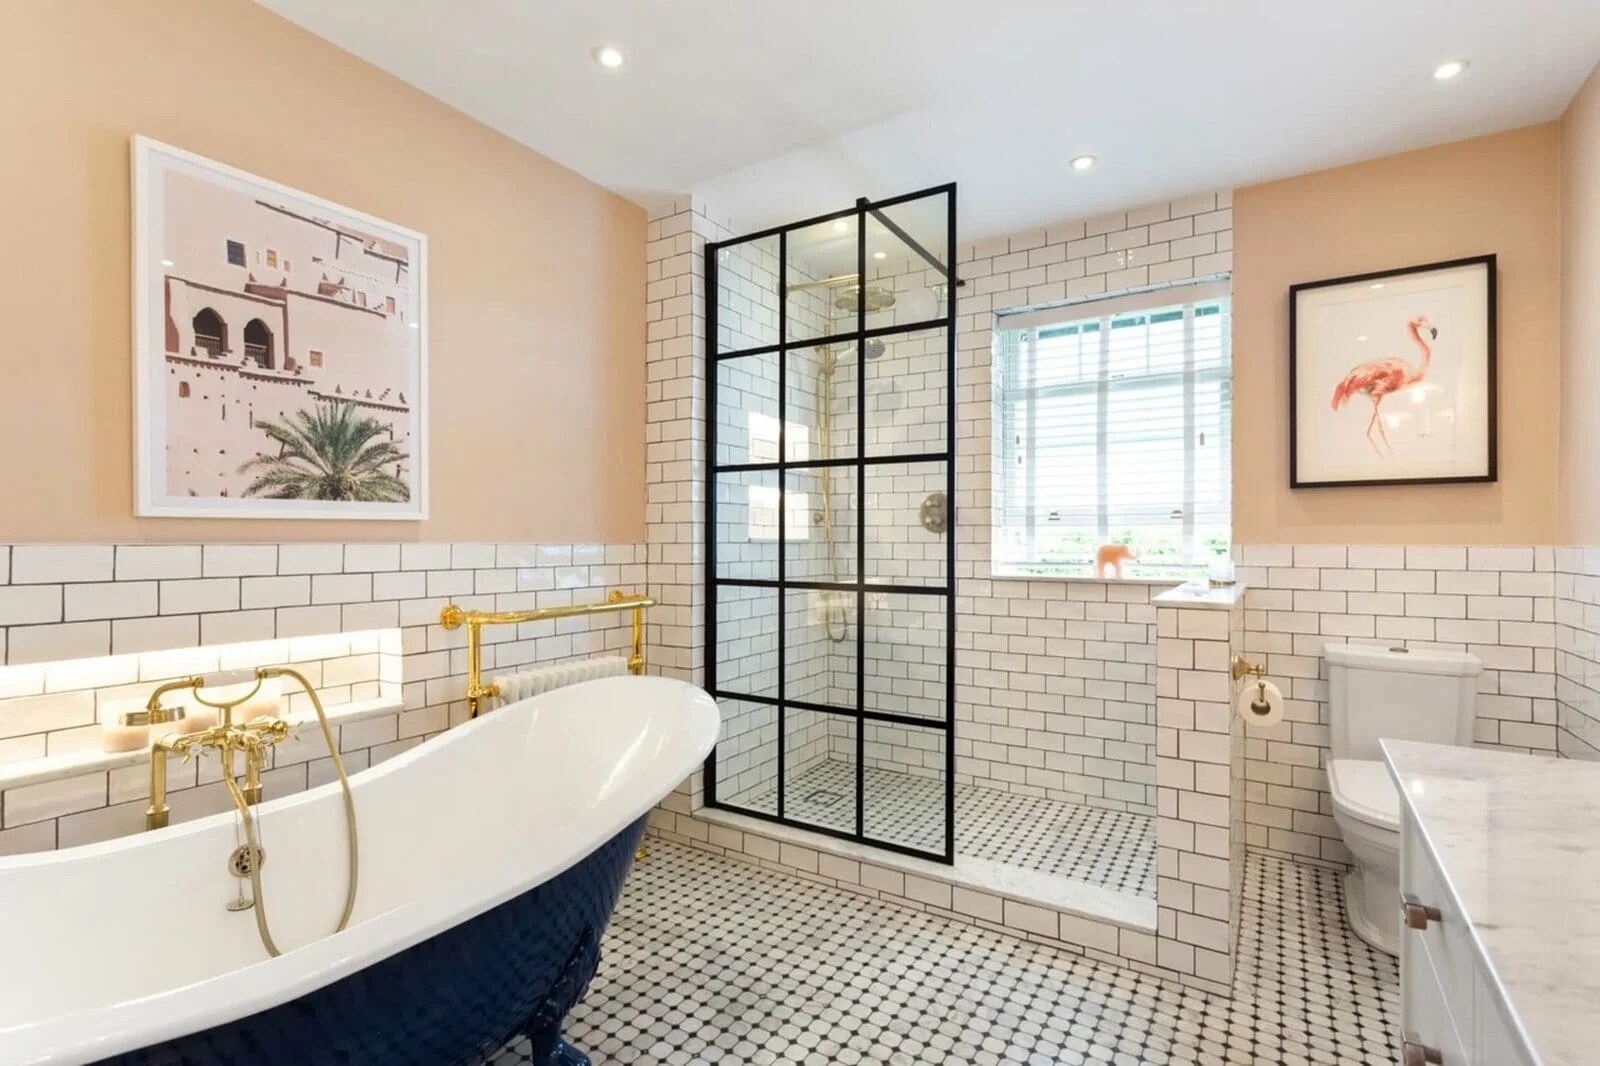 20 Bathroom Tile Ideas You Ll Want To Steal Decorilla Online